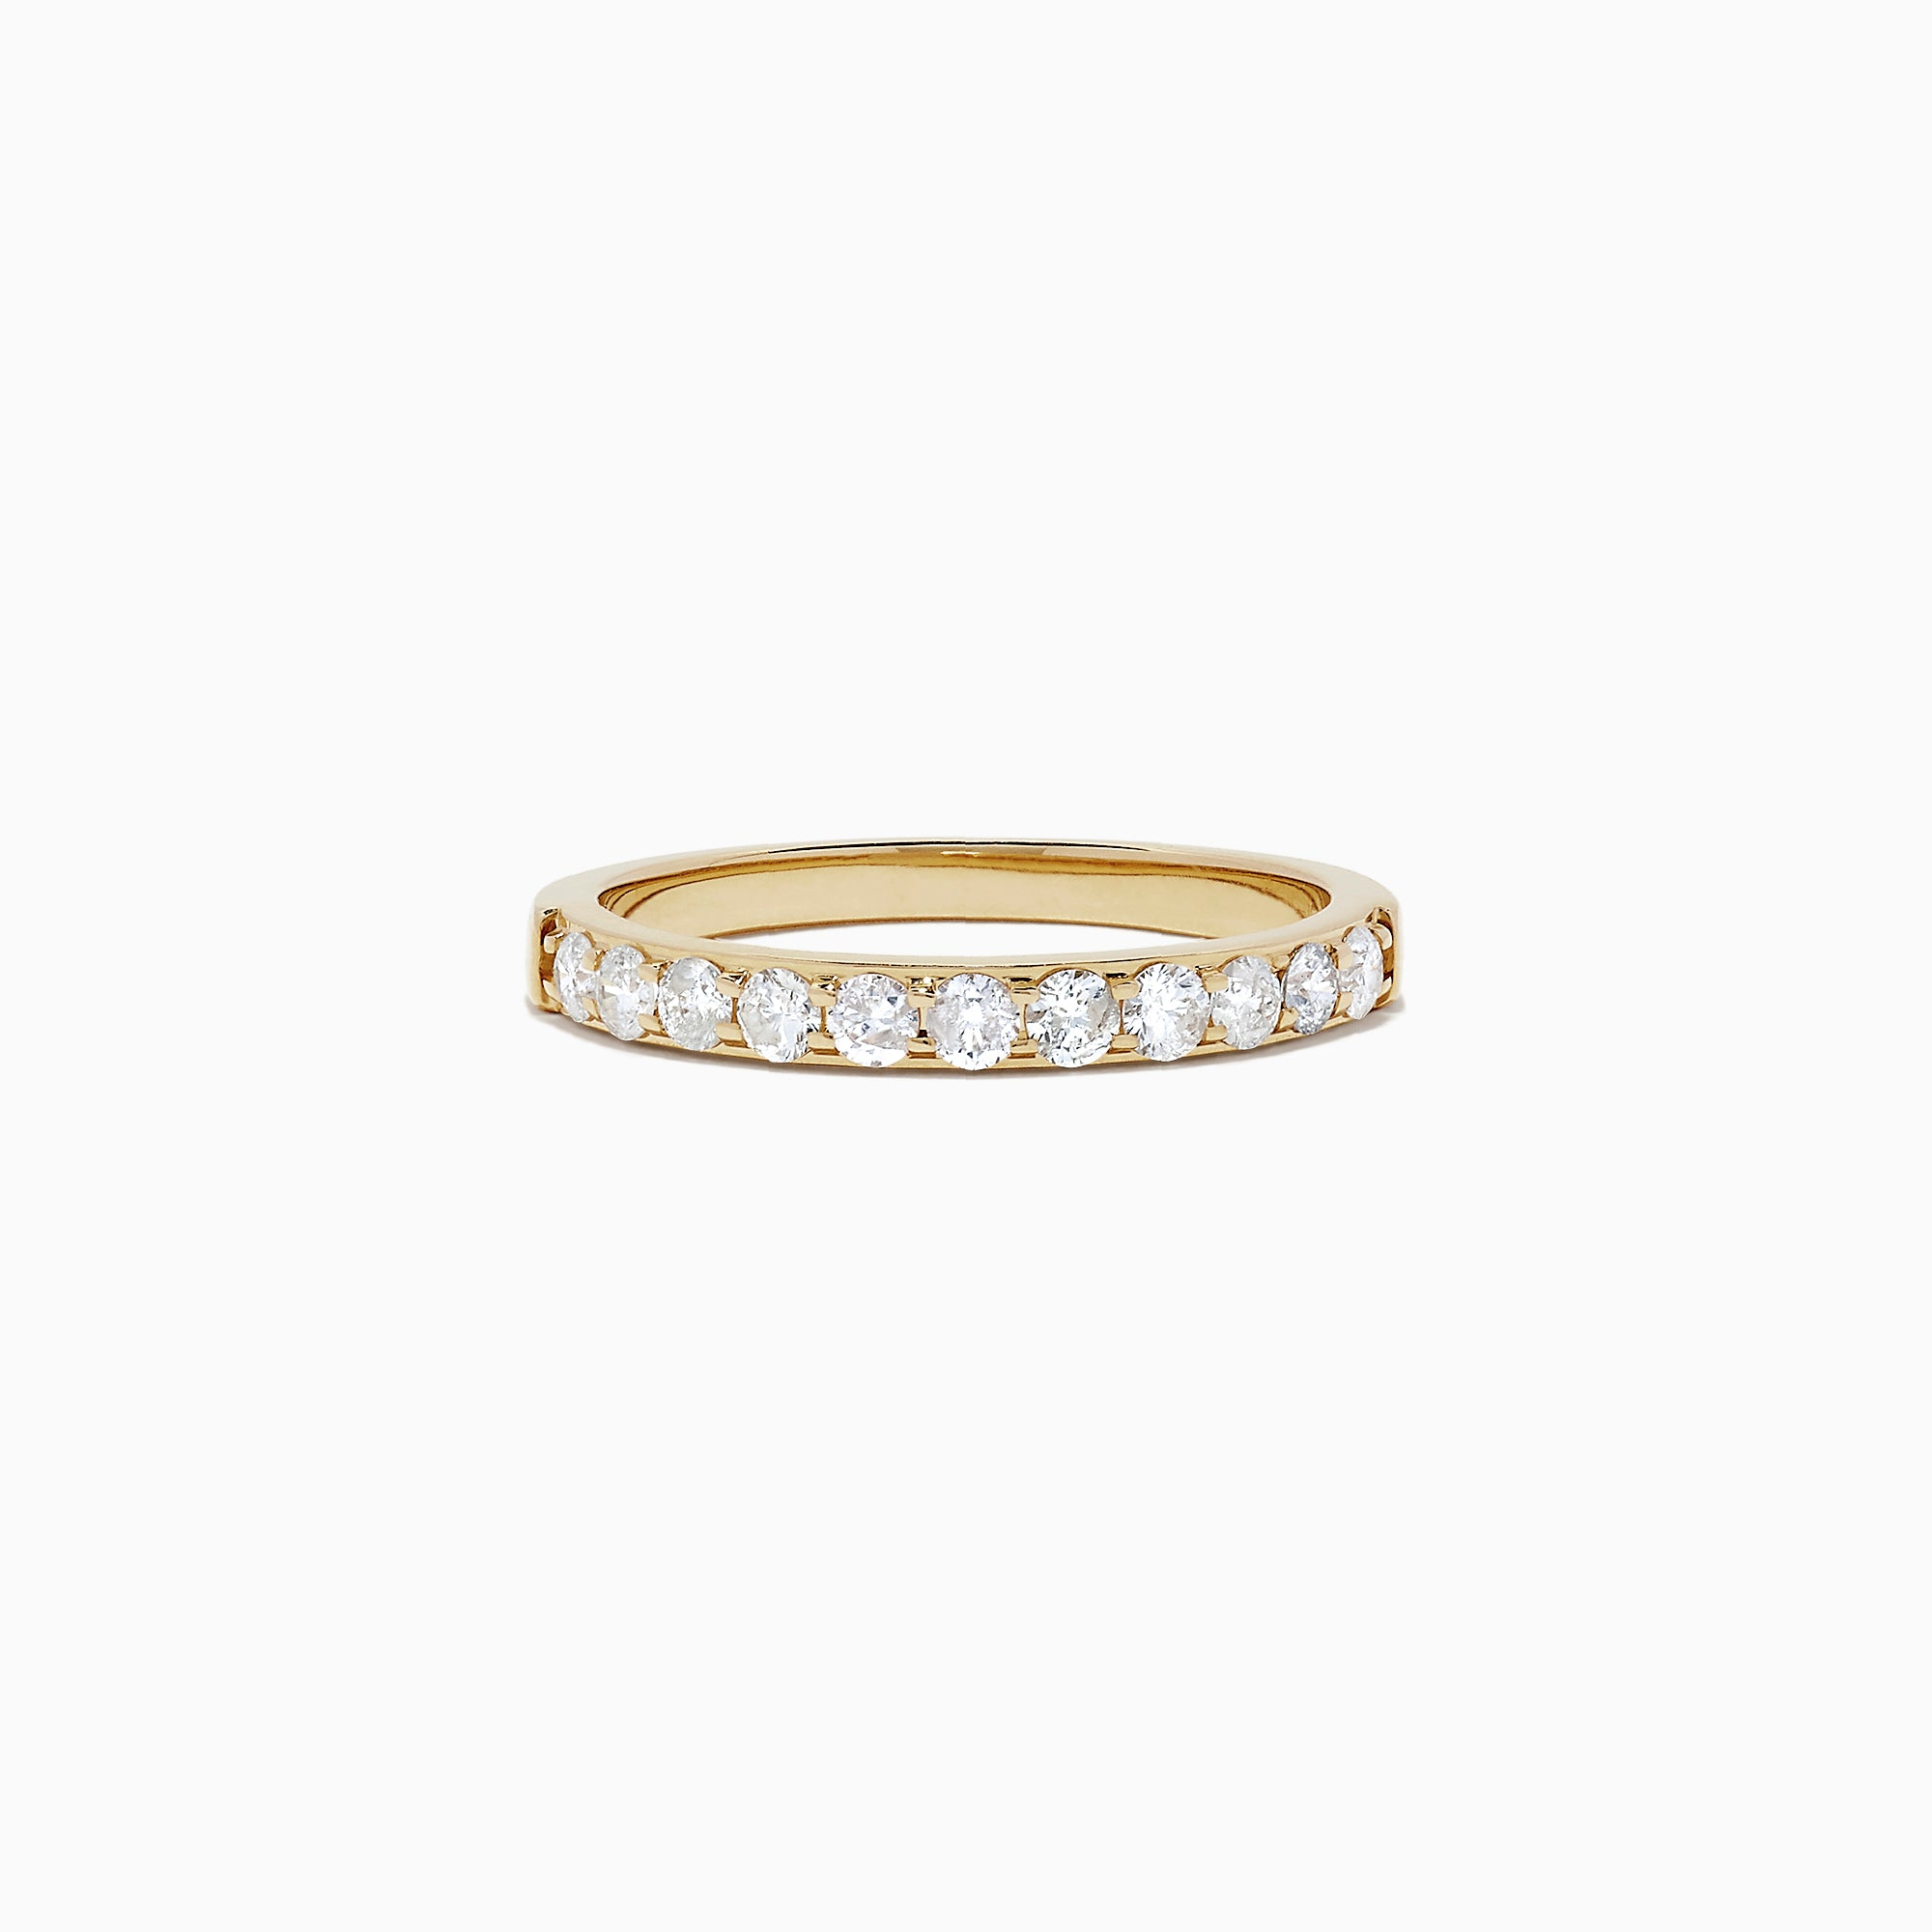 Effy Bridal 14K Yellow Gold Prong Set Diamond Band, 0.49 TCW